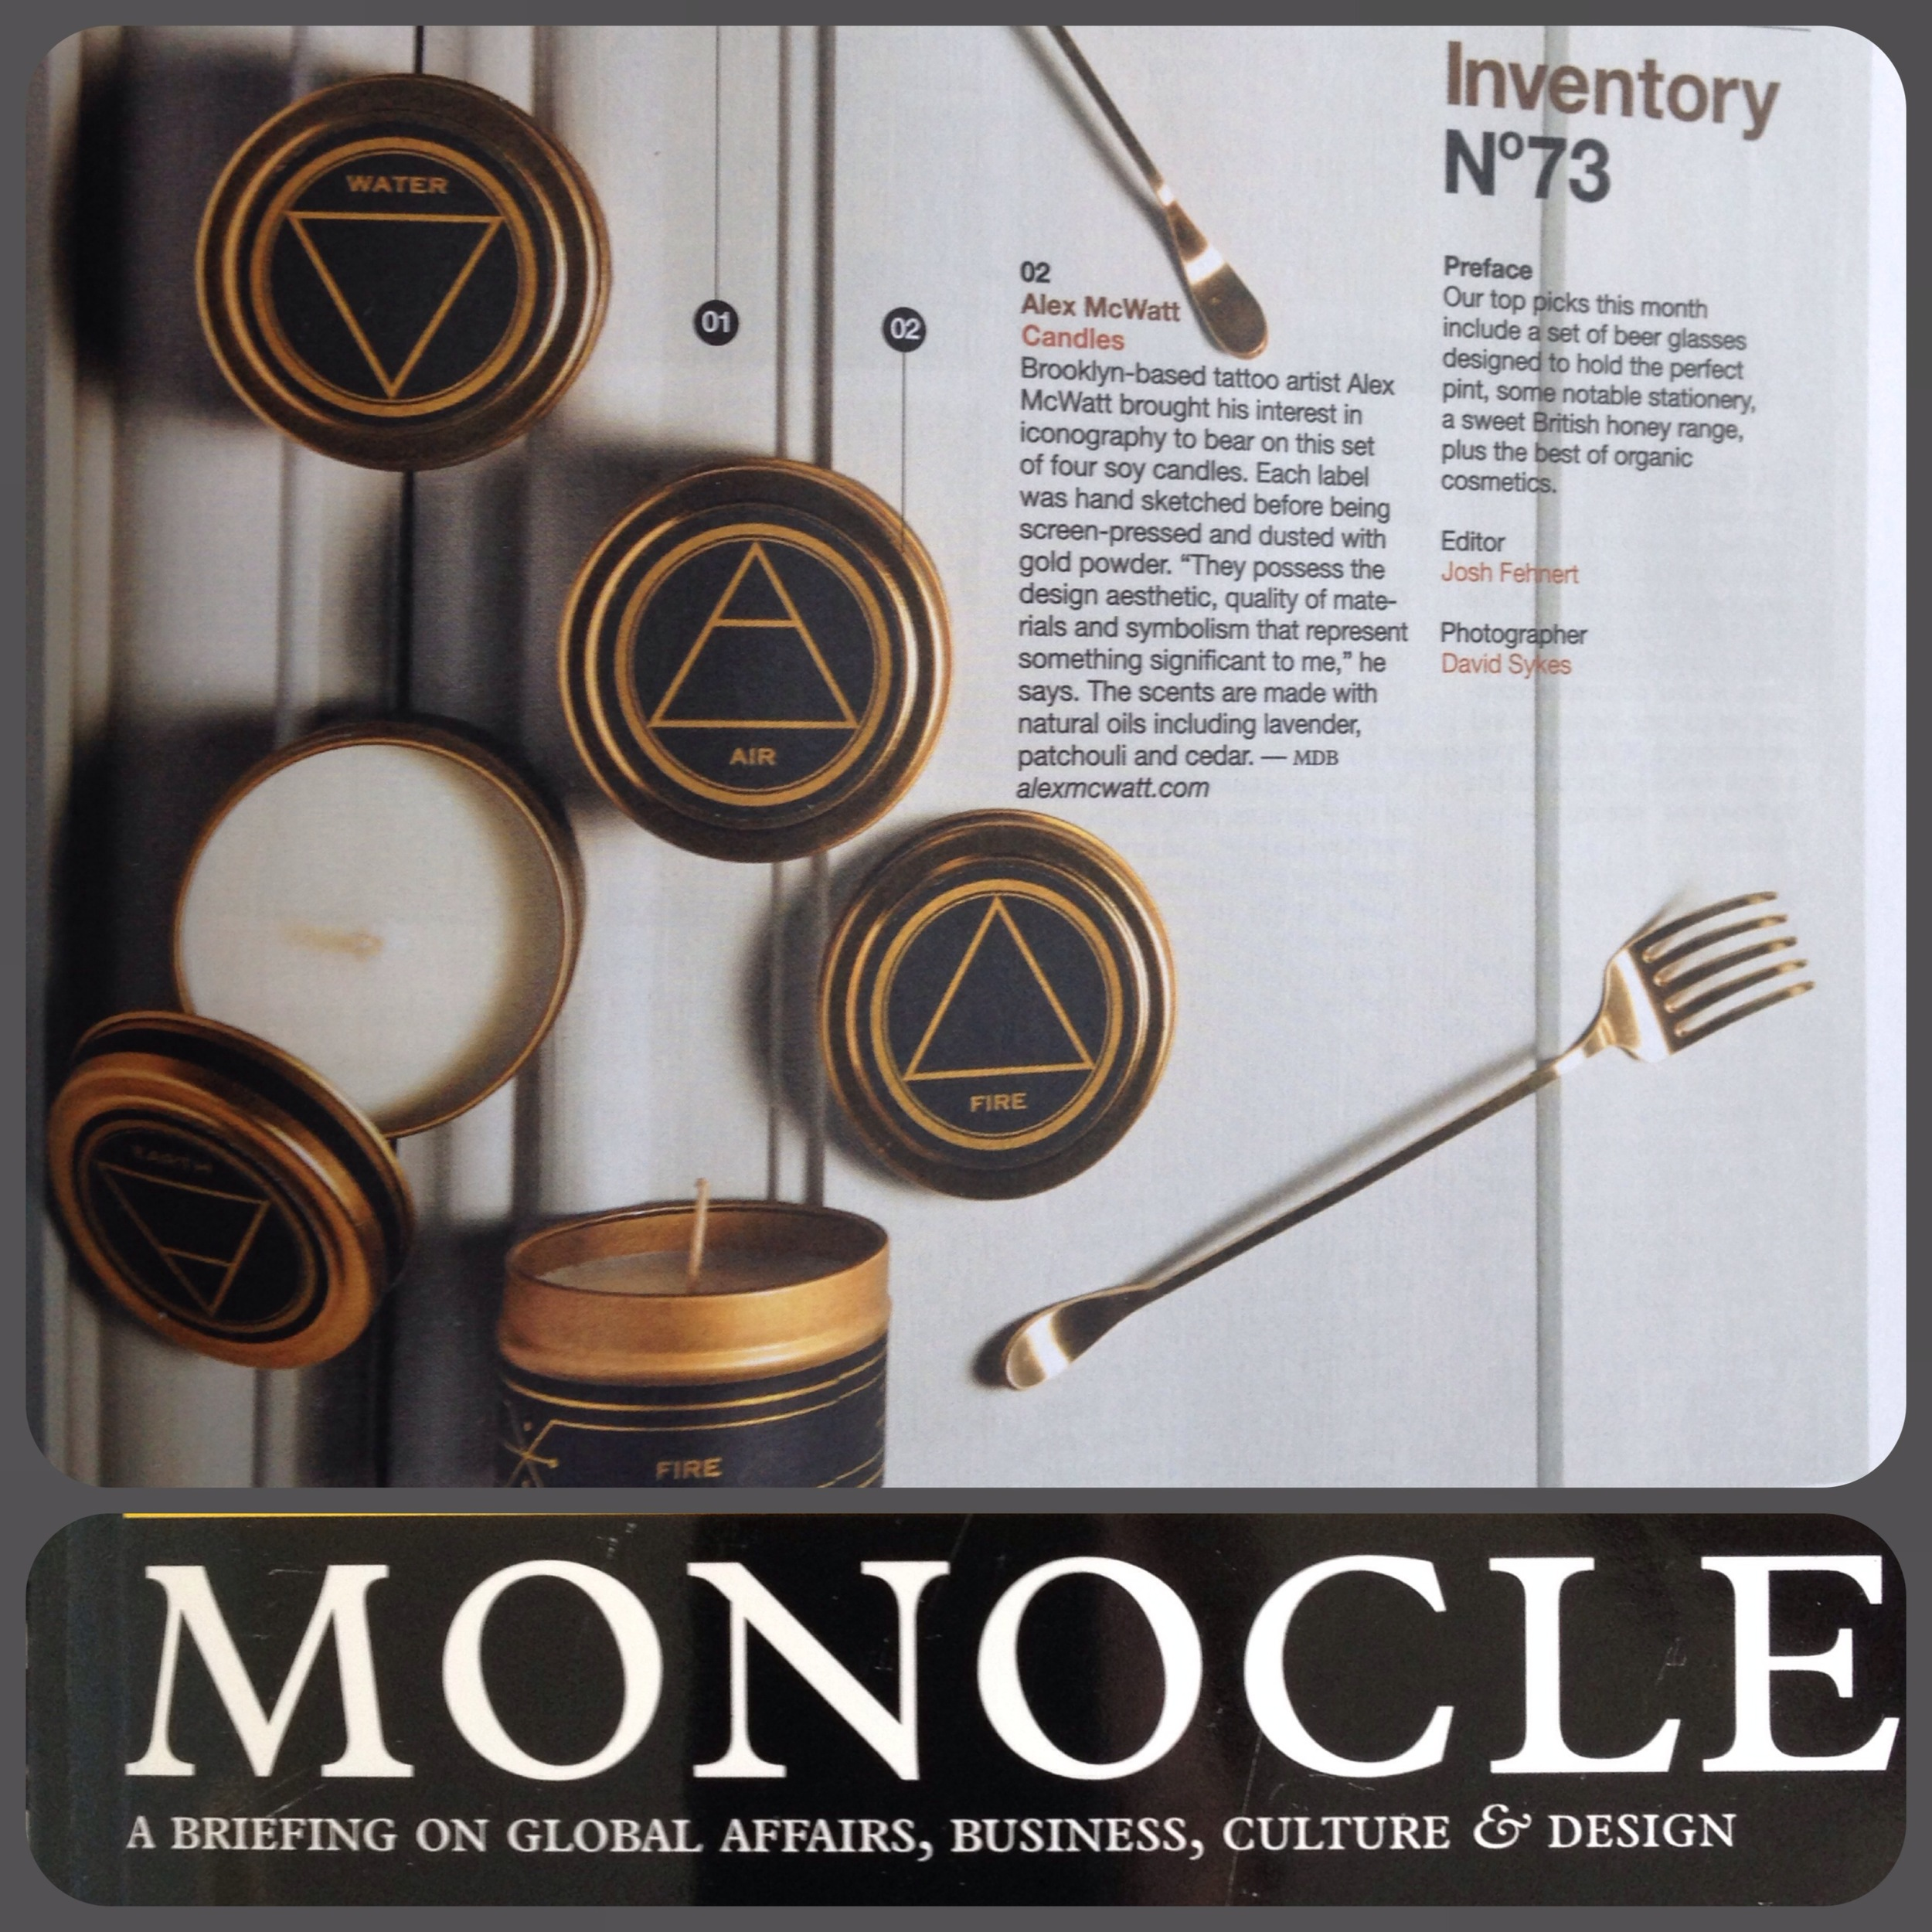 May 2014 - Three Kings Home Alchemy Candles featured in Monocle Magazine.